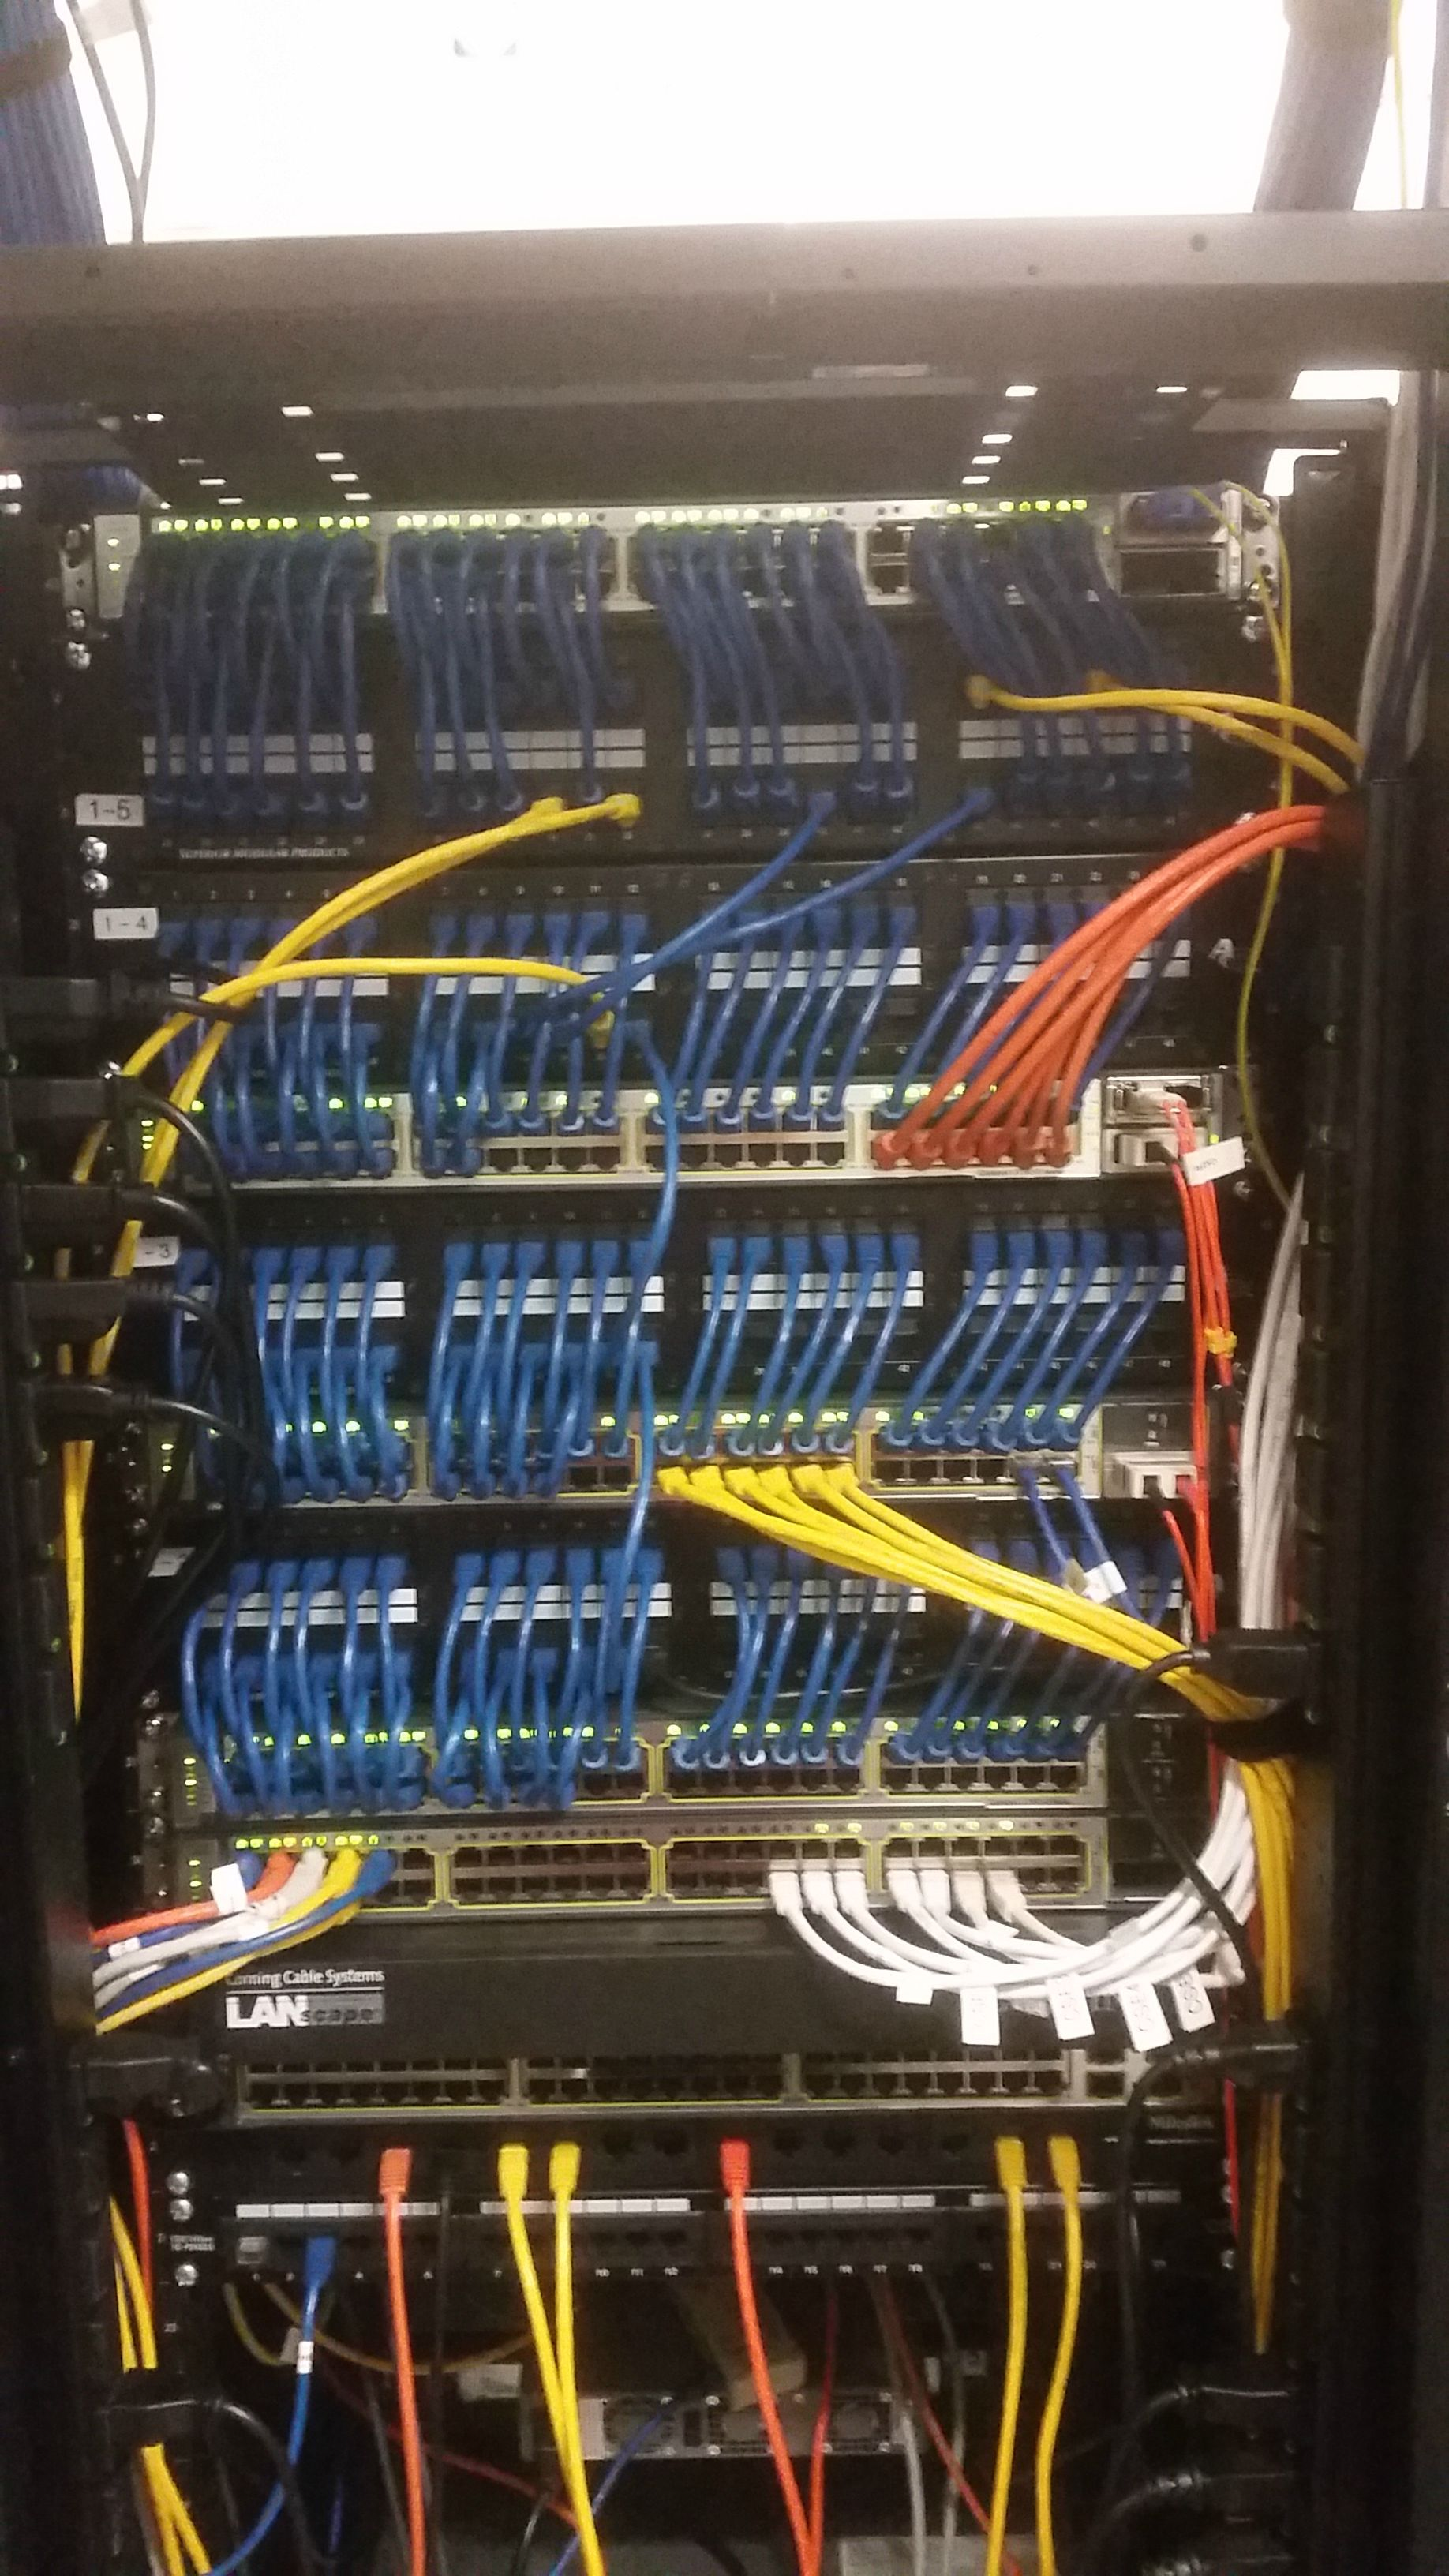 hight resolution of cleaning up a network rack cisco switches into patch panels clean job believe orange and yellow are powered but could be wrong